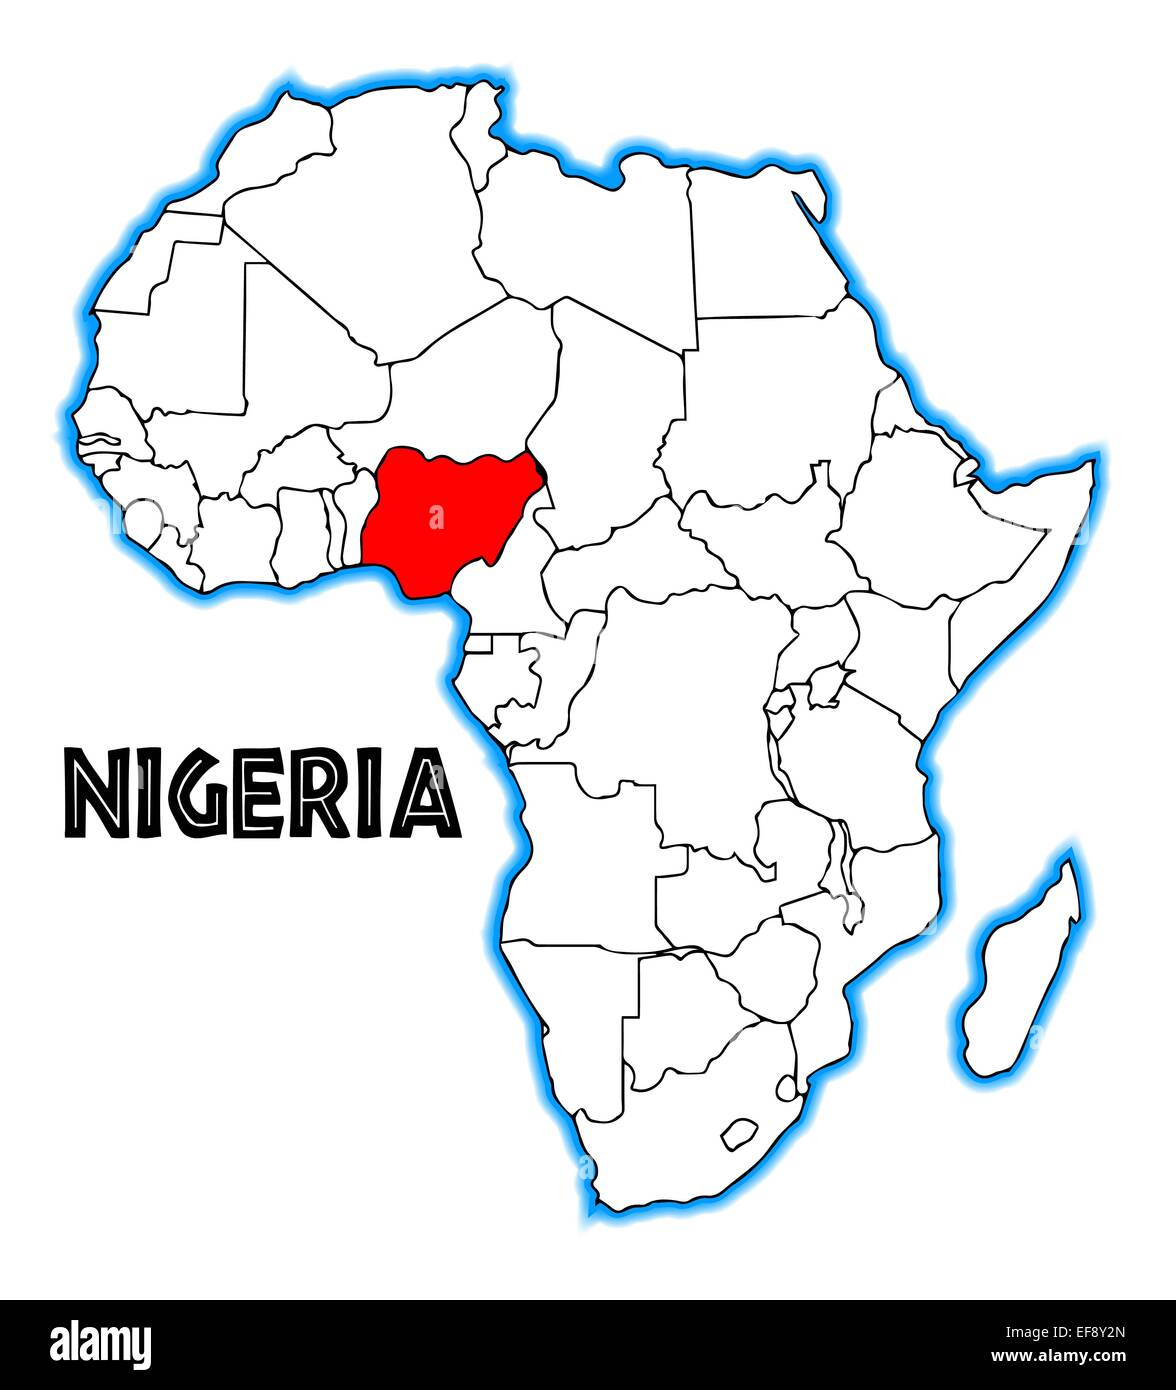 Nigeria outline inset into a map of Africa over a white background ...